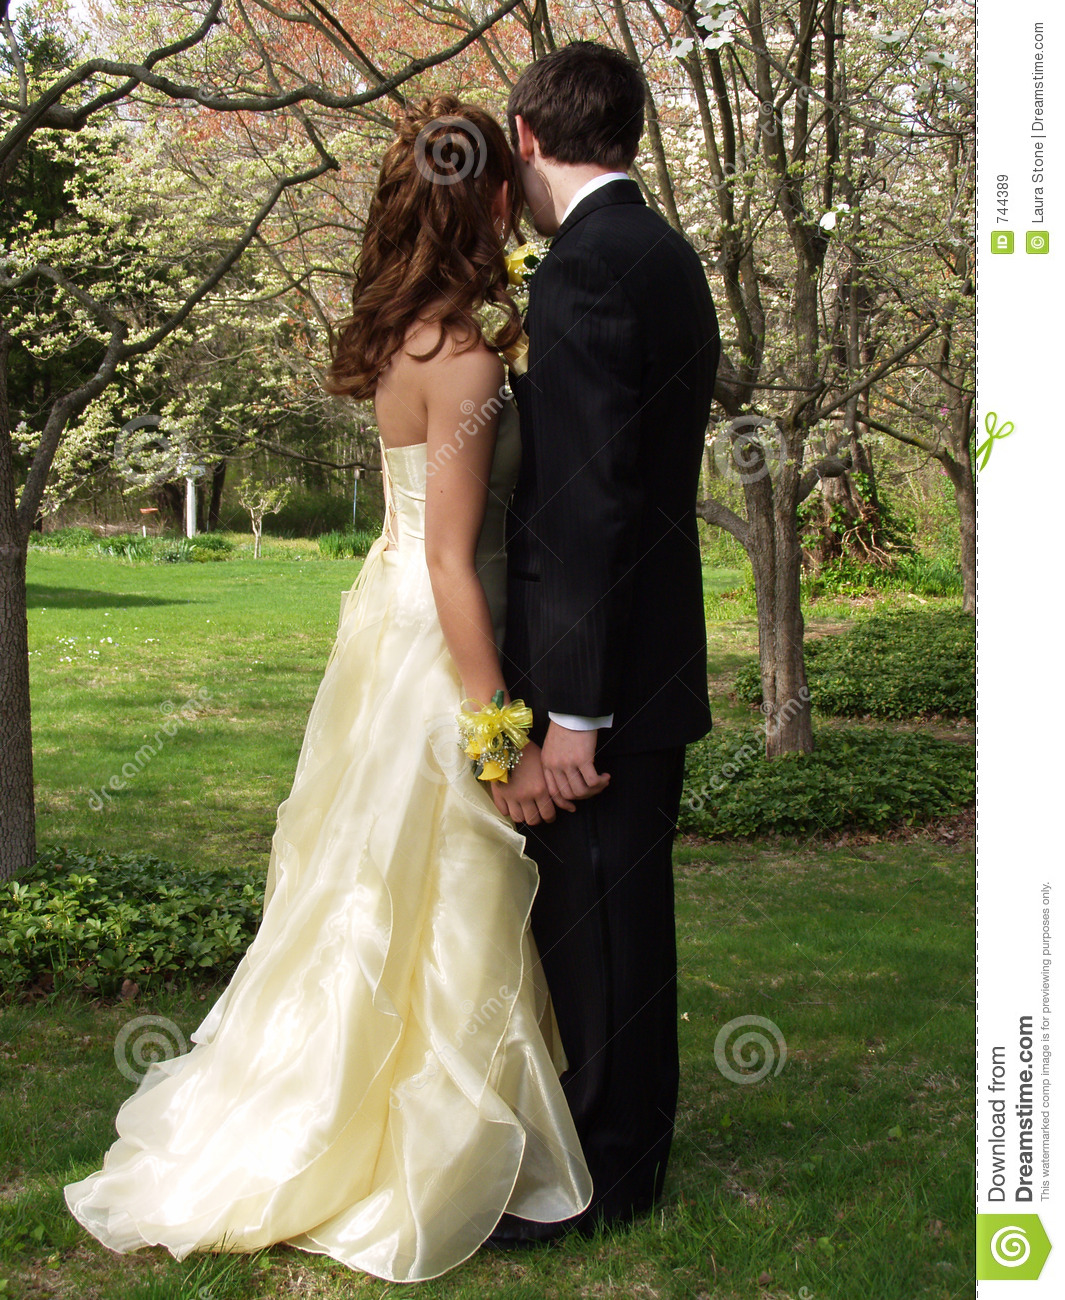 Prom Couple Stock Image. Image Of Gown, Pastel, Holding